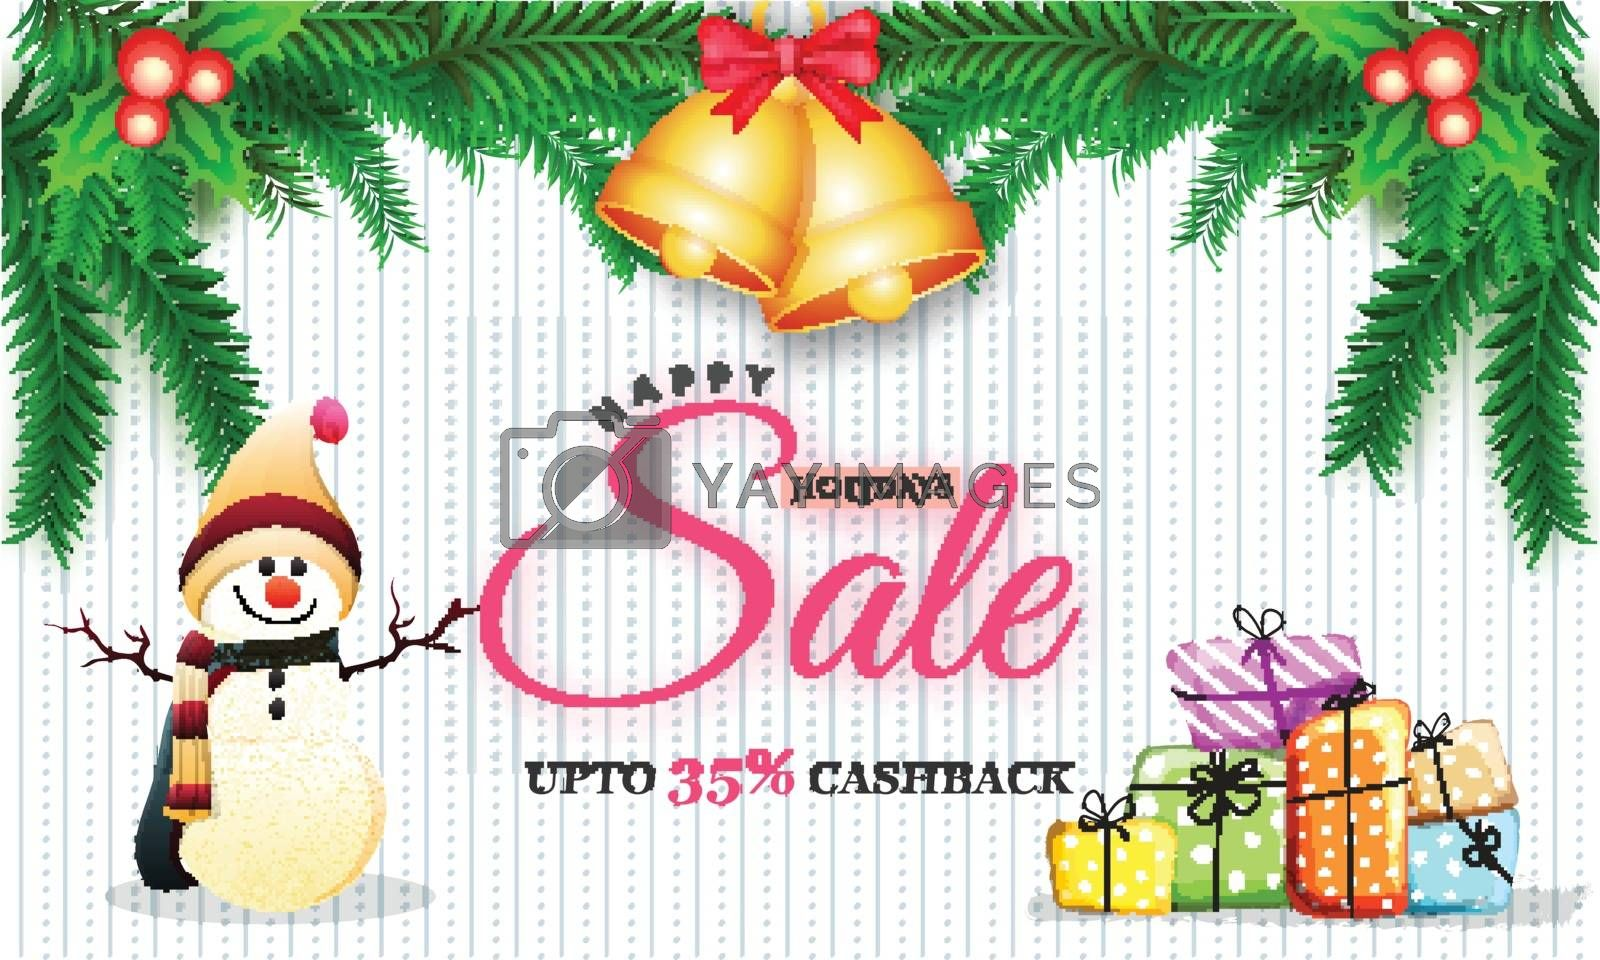 Royalty free image of Happy Holidays Sale Banner with 35% Cashback Offer, Snowman, Gif by aispl